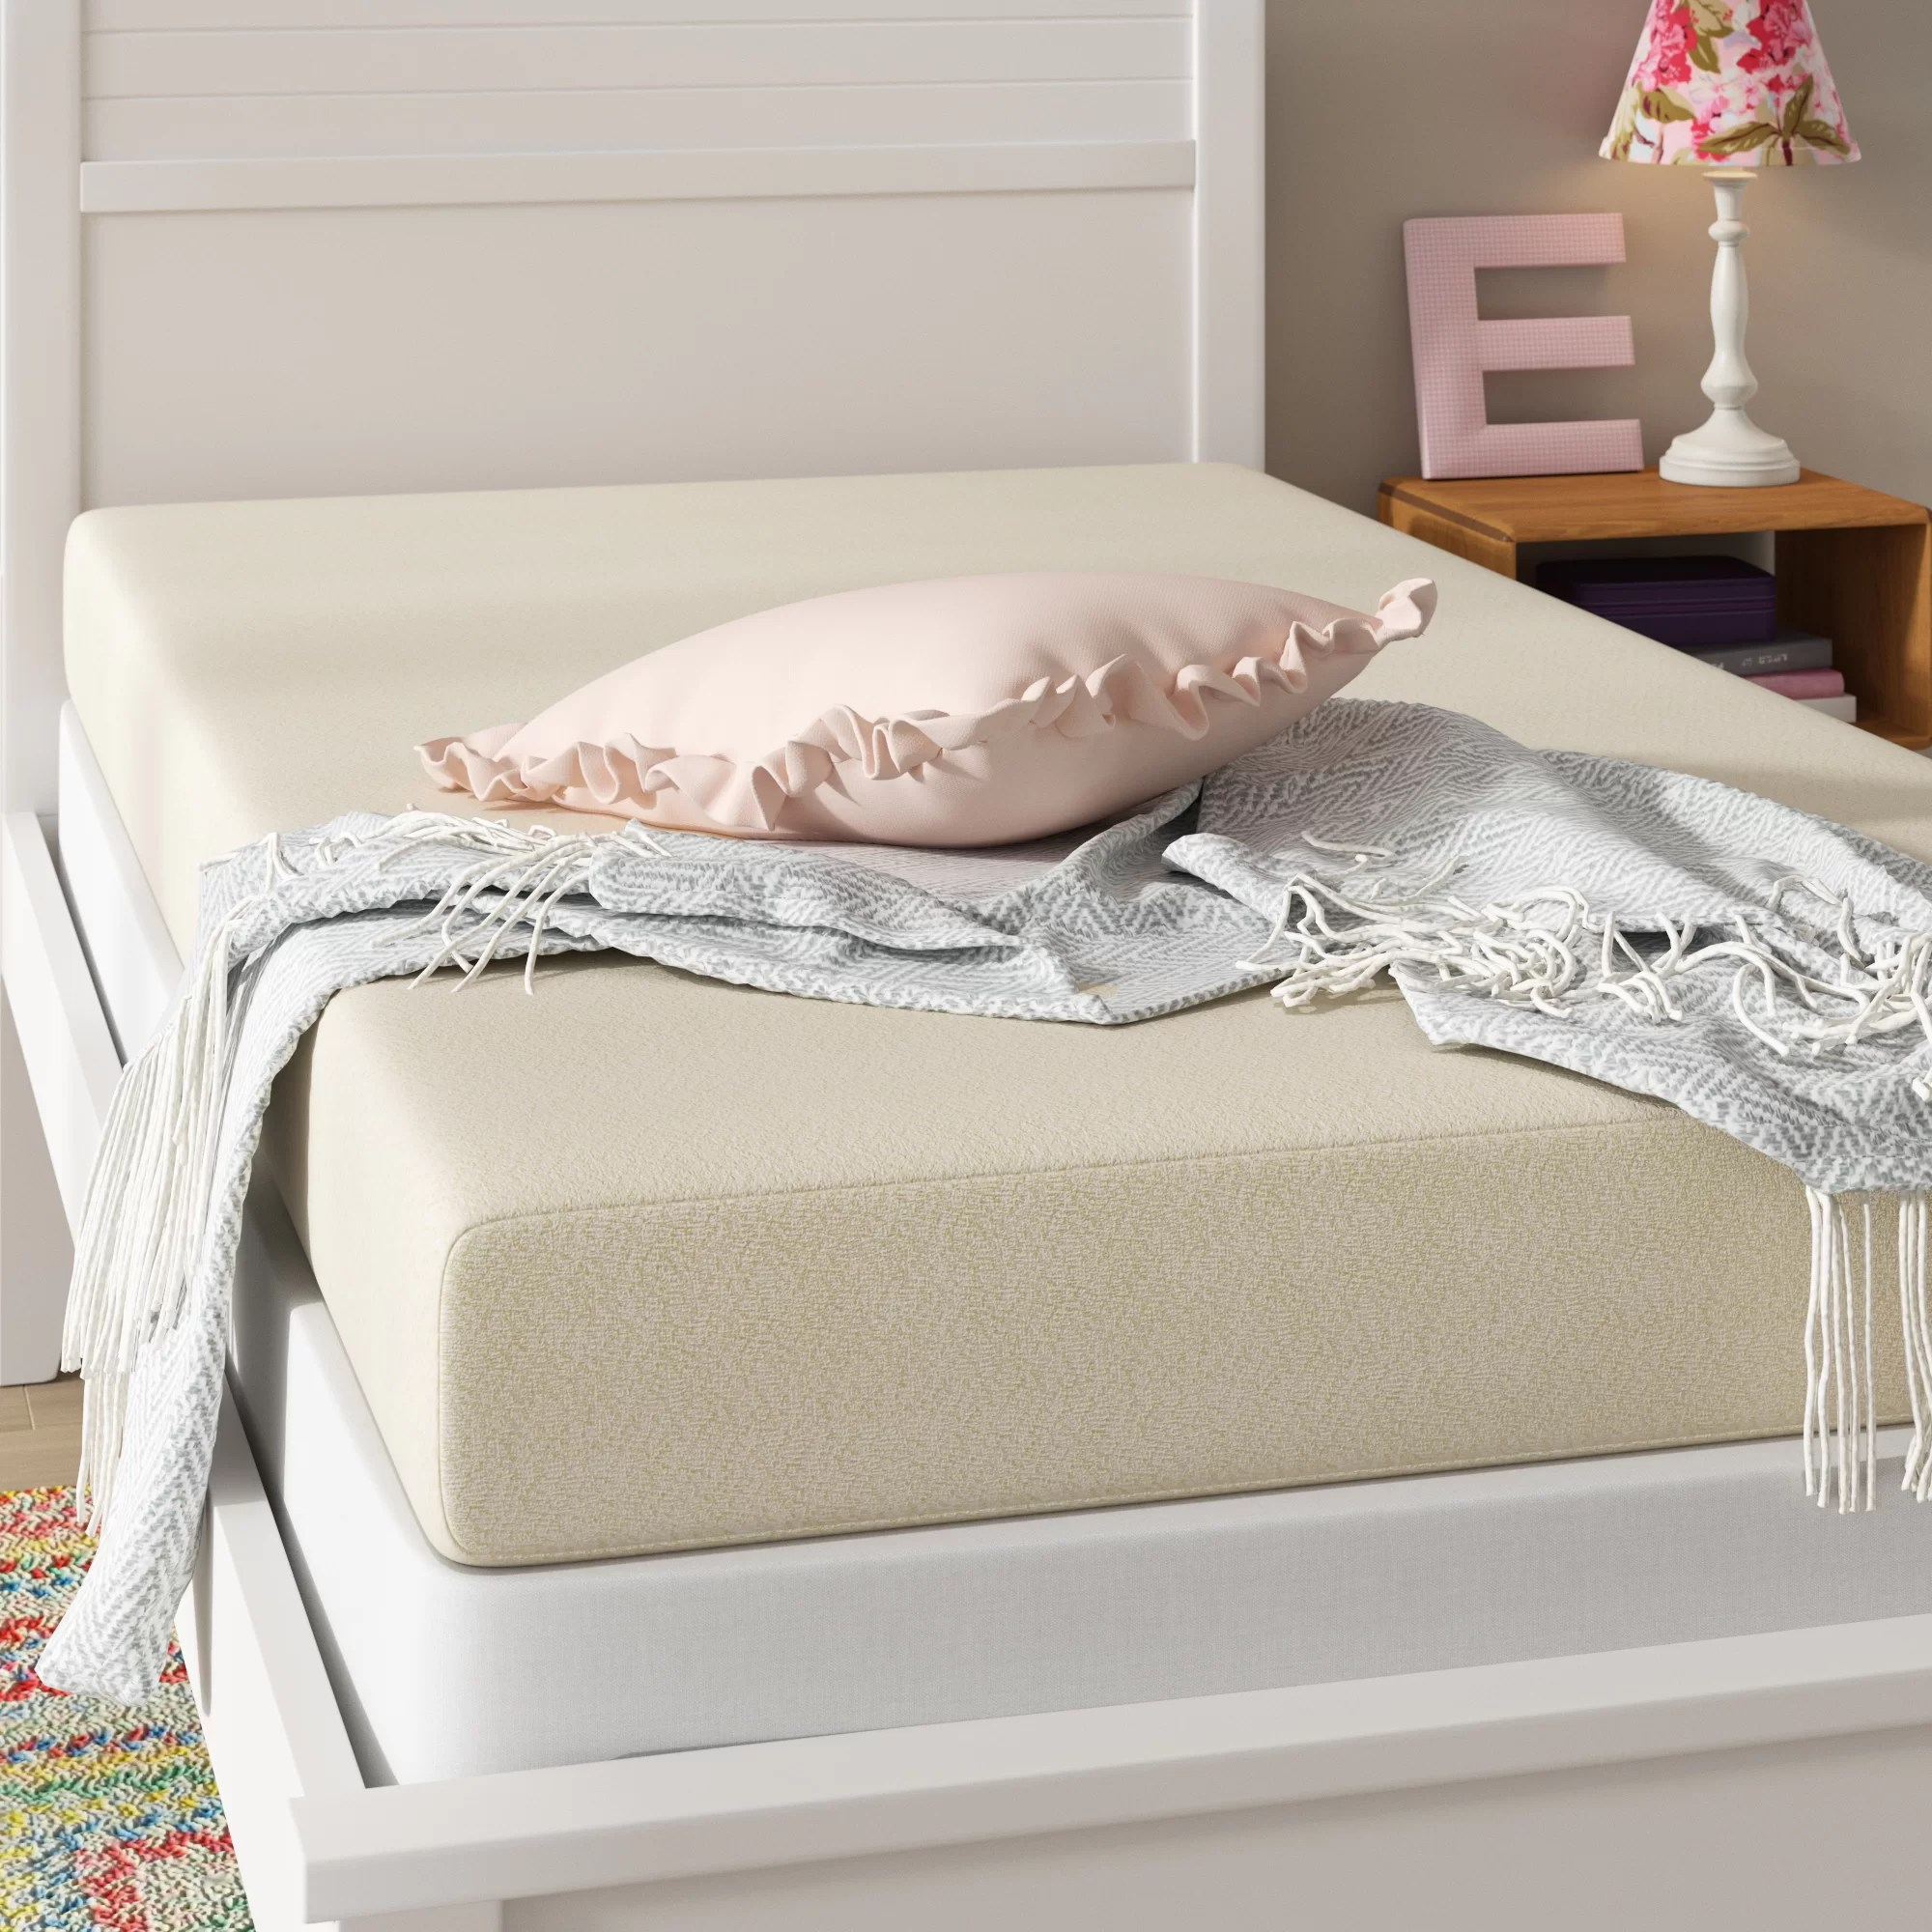 Bedroom Mattress Wayfair Sleep 6